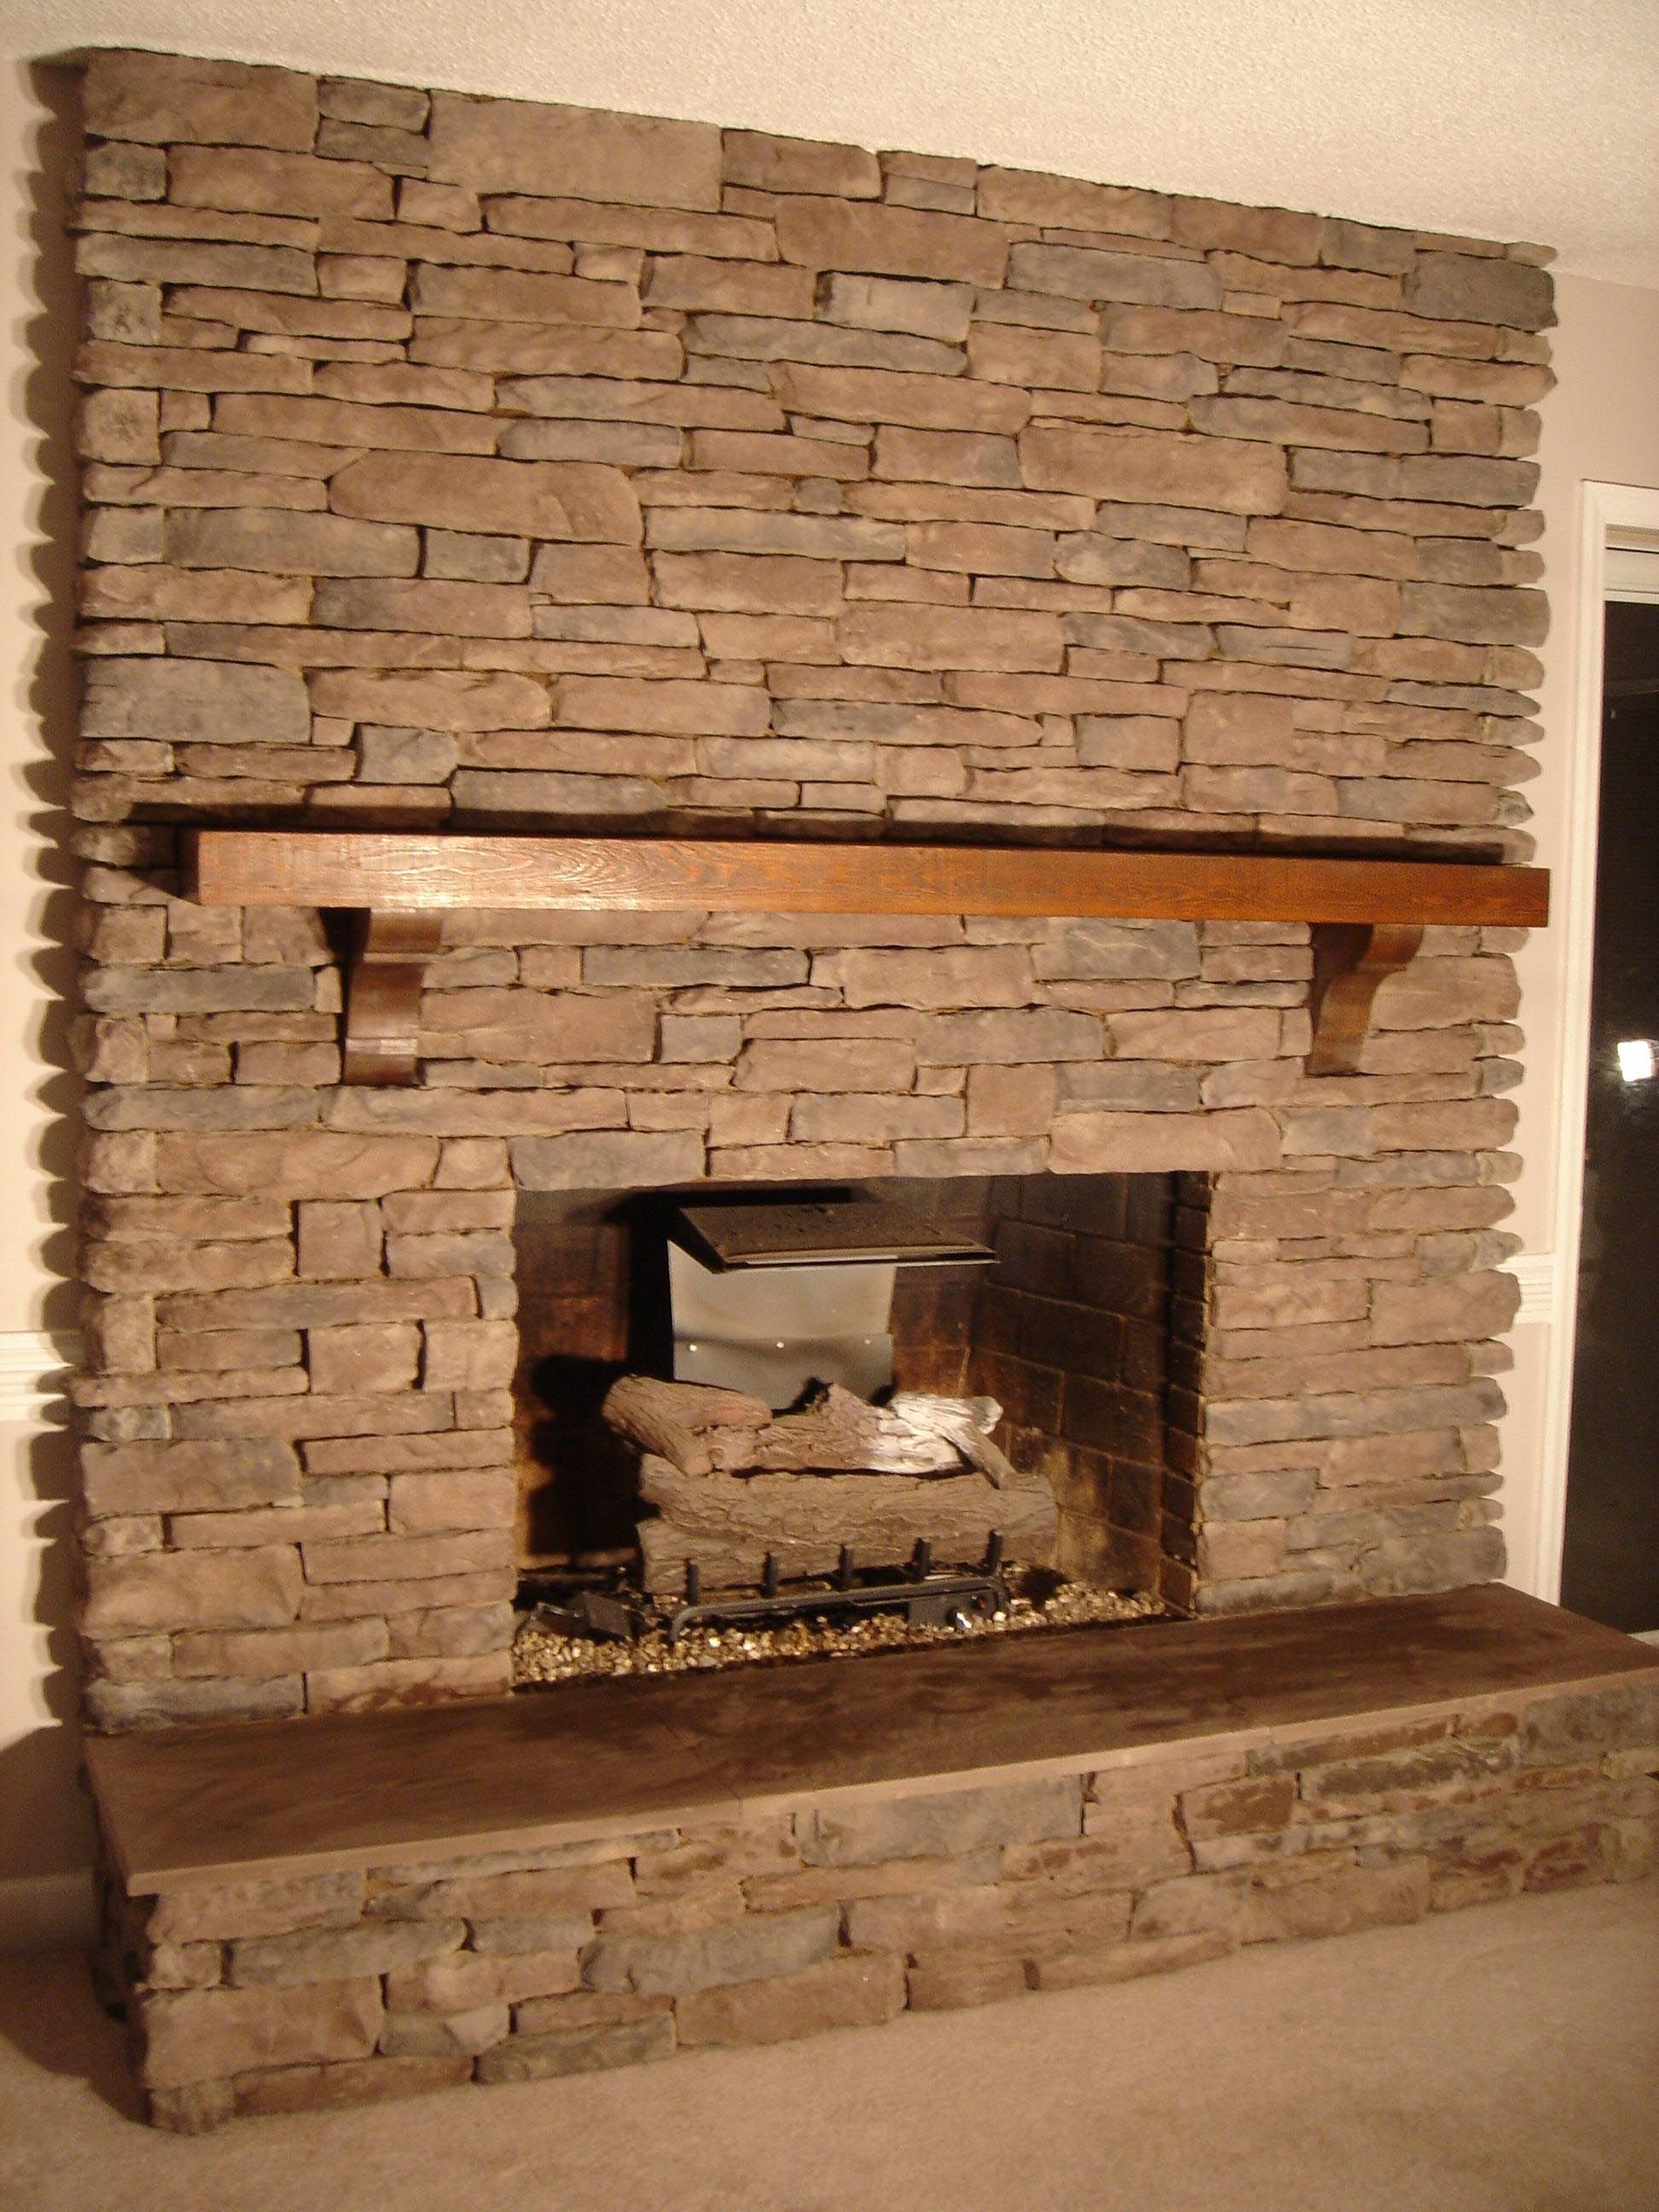 Stone tile fireplace surround fireplace pinterest tiled stone fireplace stone fireplace remodeling pictures stone fireplace accent wall do it yourself fireplace remodel decorative fireplace designs with brick solutioingenieria Gallery